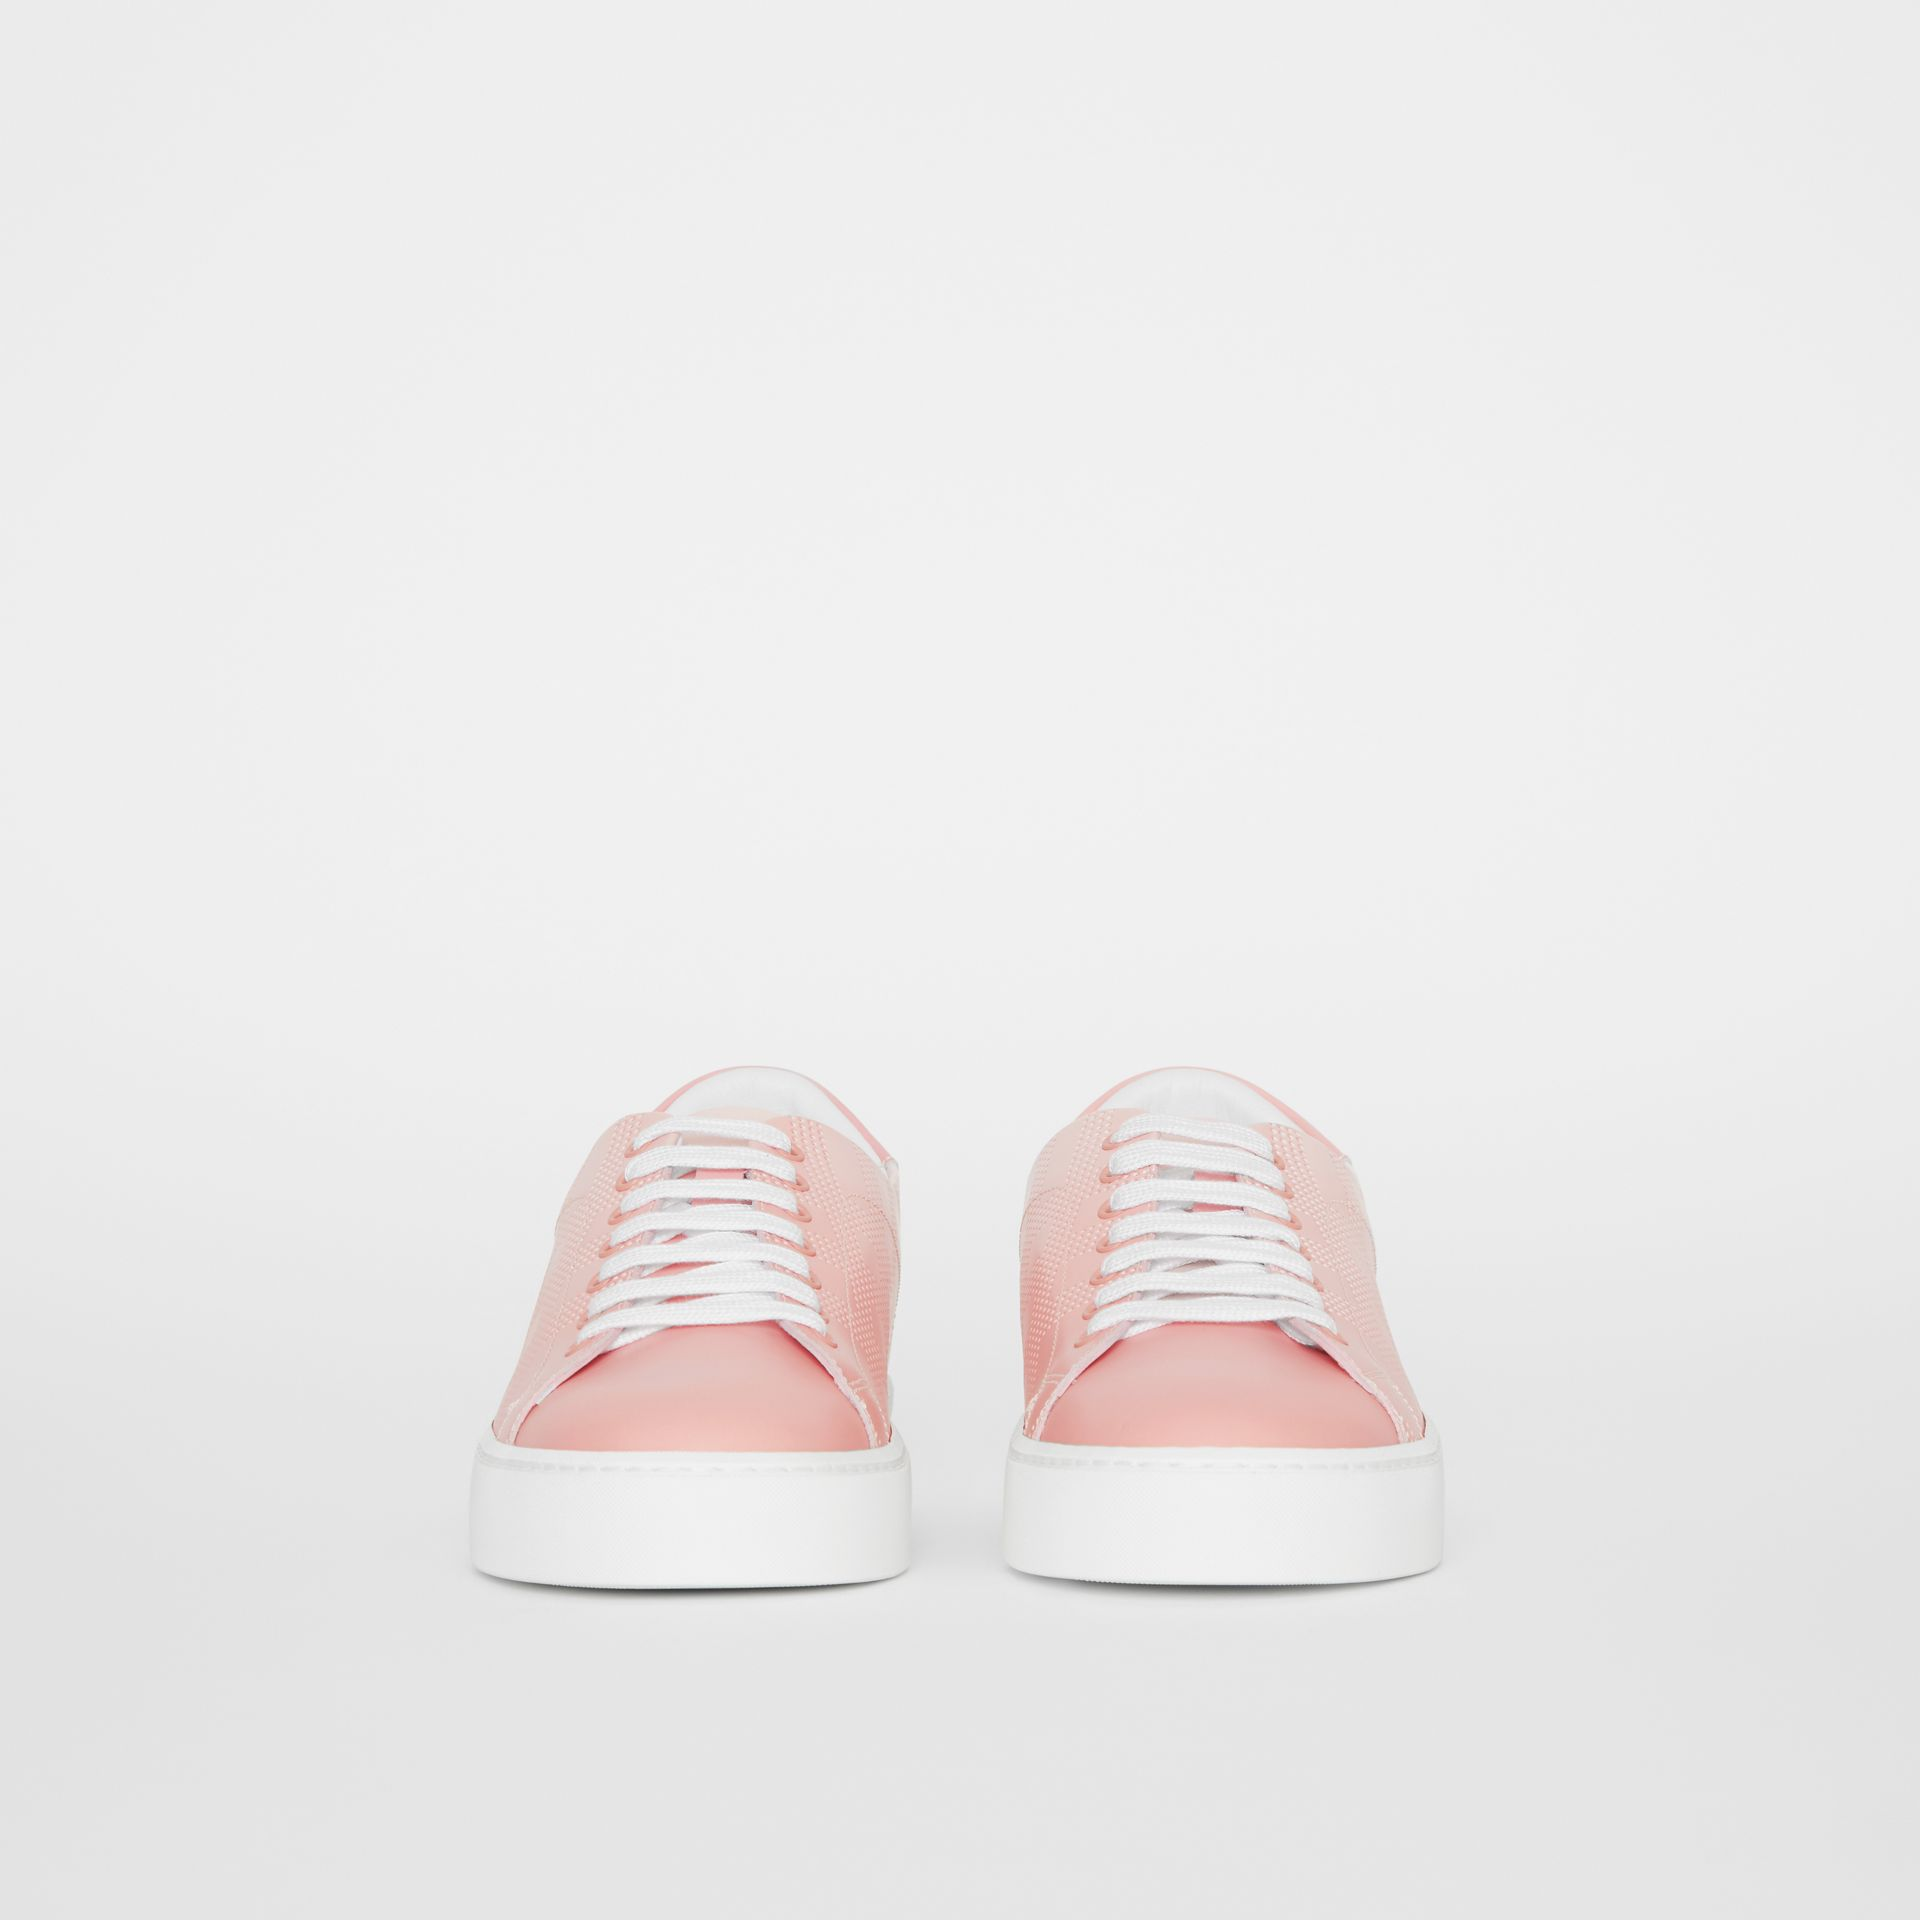 Perforated Check Dégradé Leather Sneakers in Sugar Pink - Women | Burberry Canada - gallery image 3